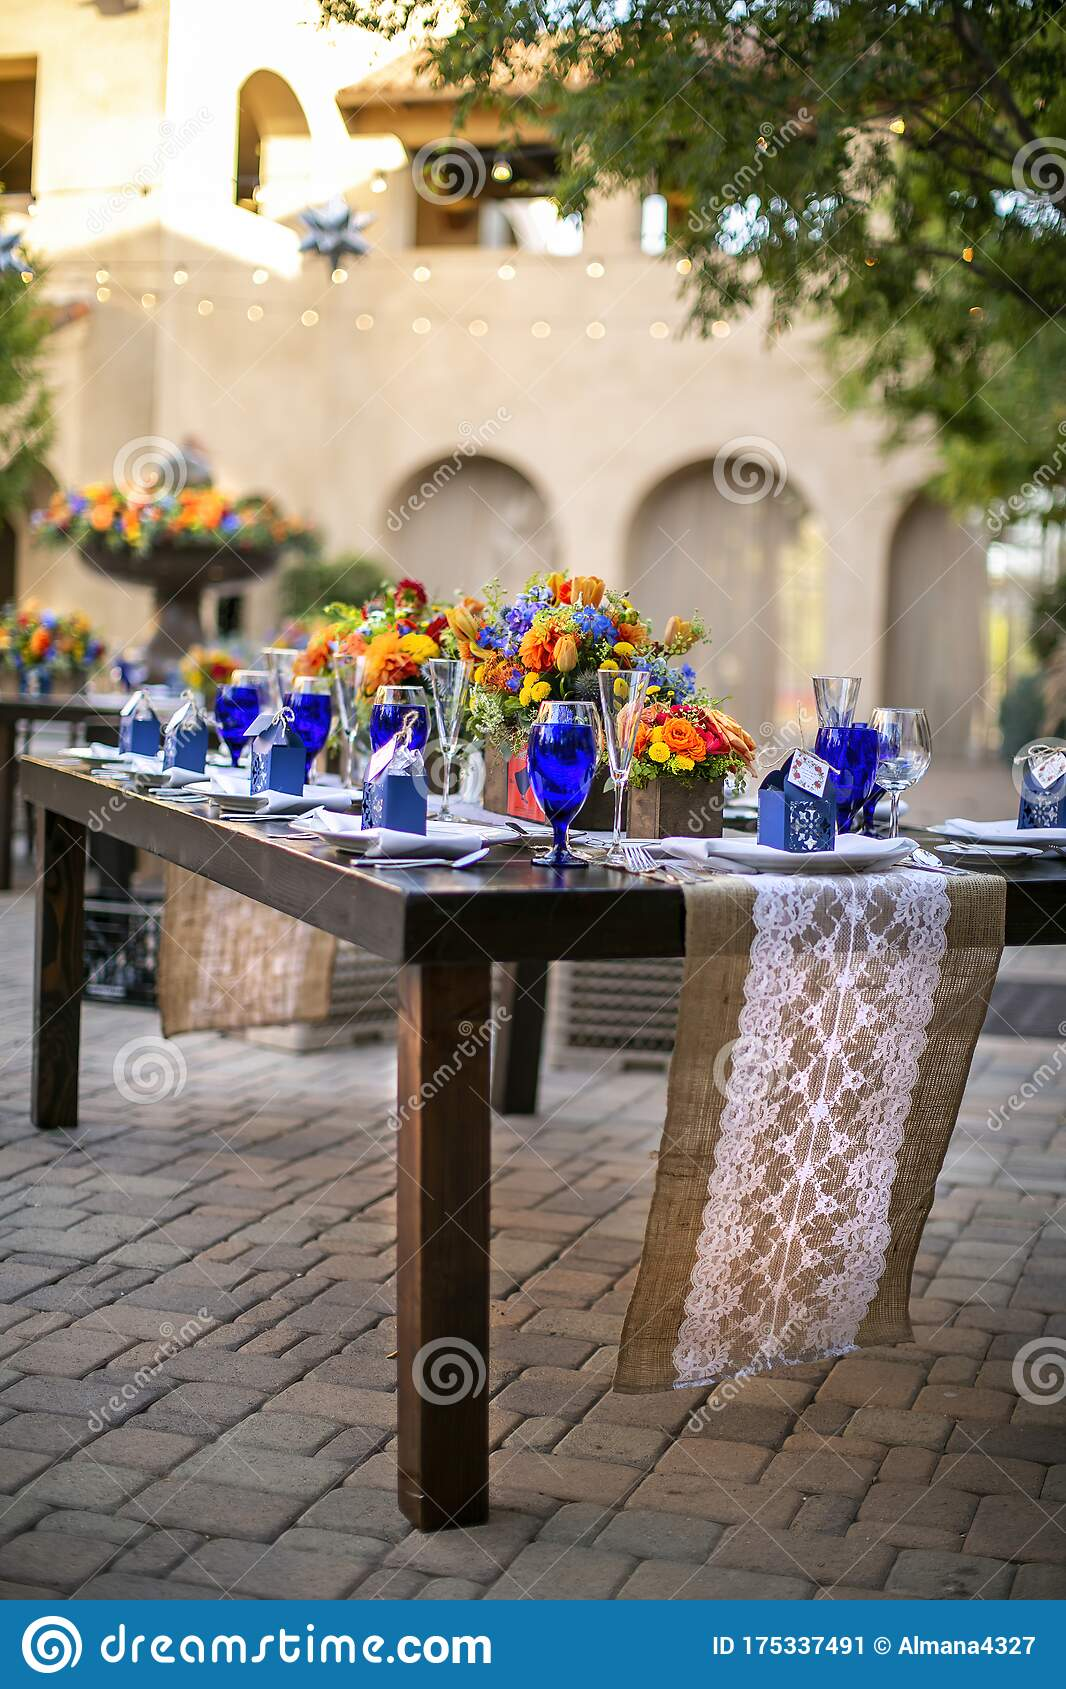 Table Setting For A Wedding Celebration In An Outdoor Mission Style Patio With Blue And Orange Theme And Flower Decorations Stock Image Image Of Ceremony Bouquet 175337491